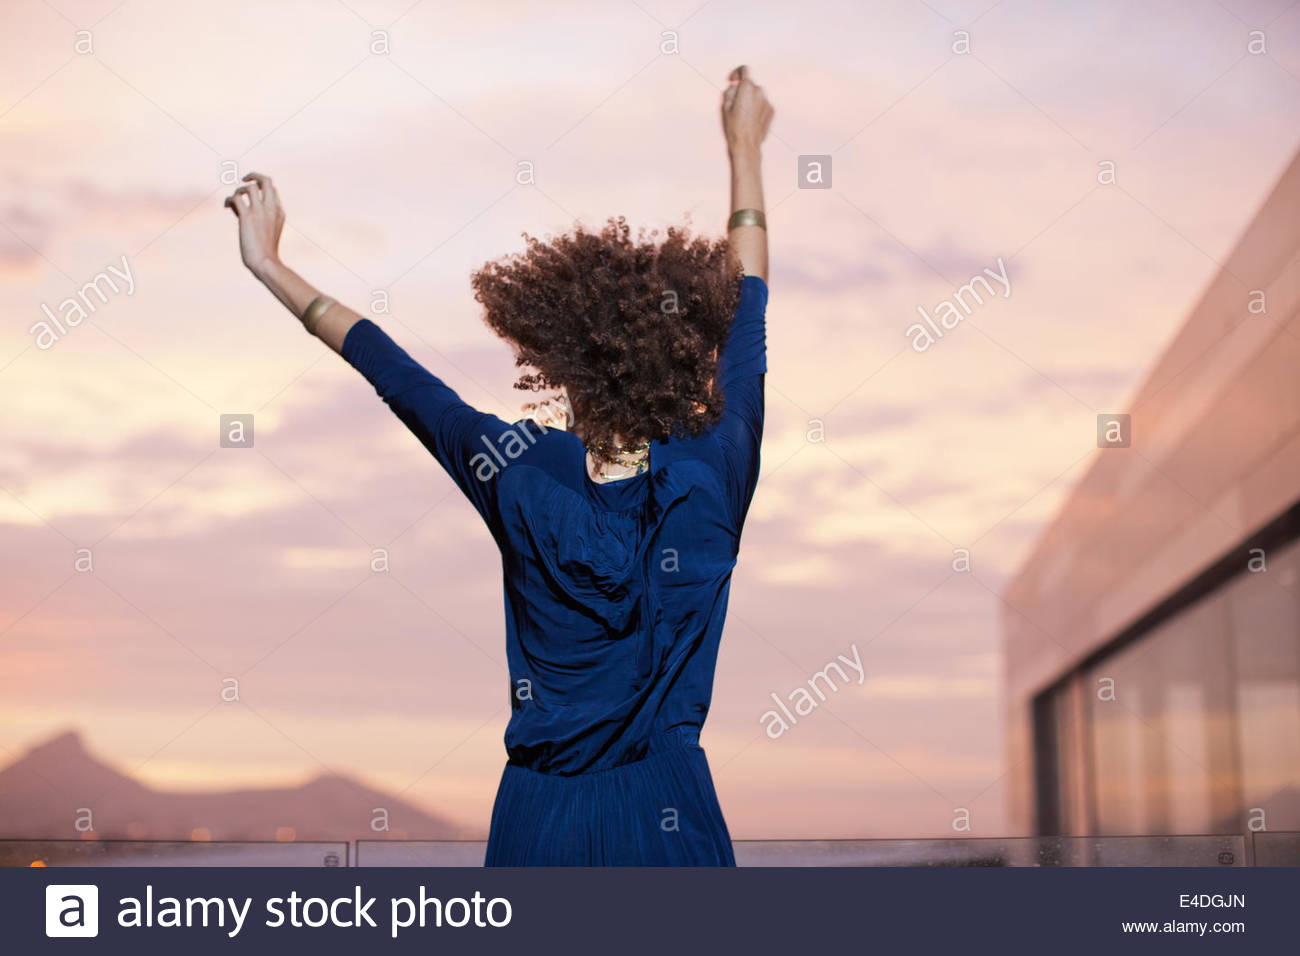 Woman dancing with arms raised - Stock Image